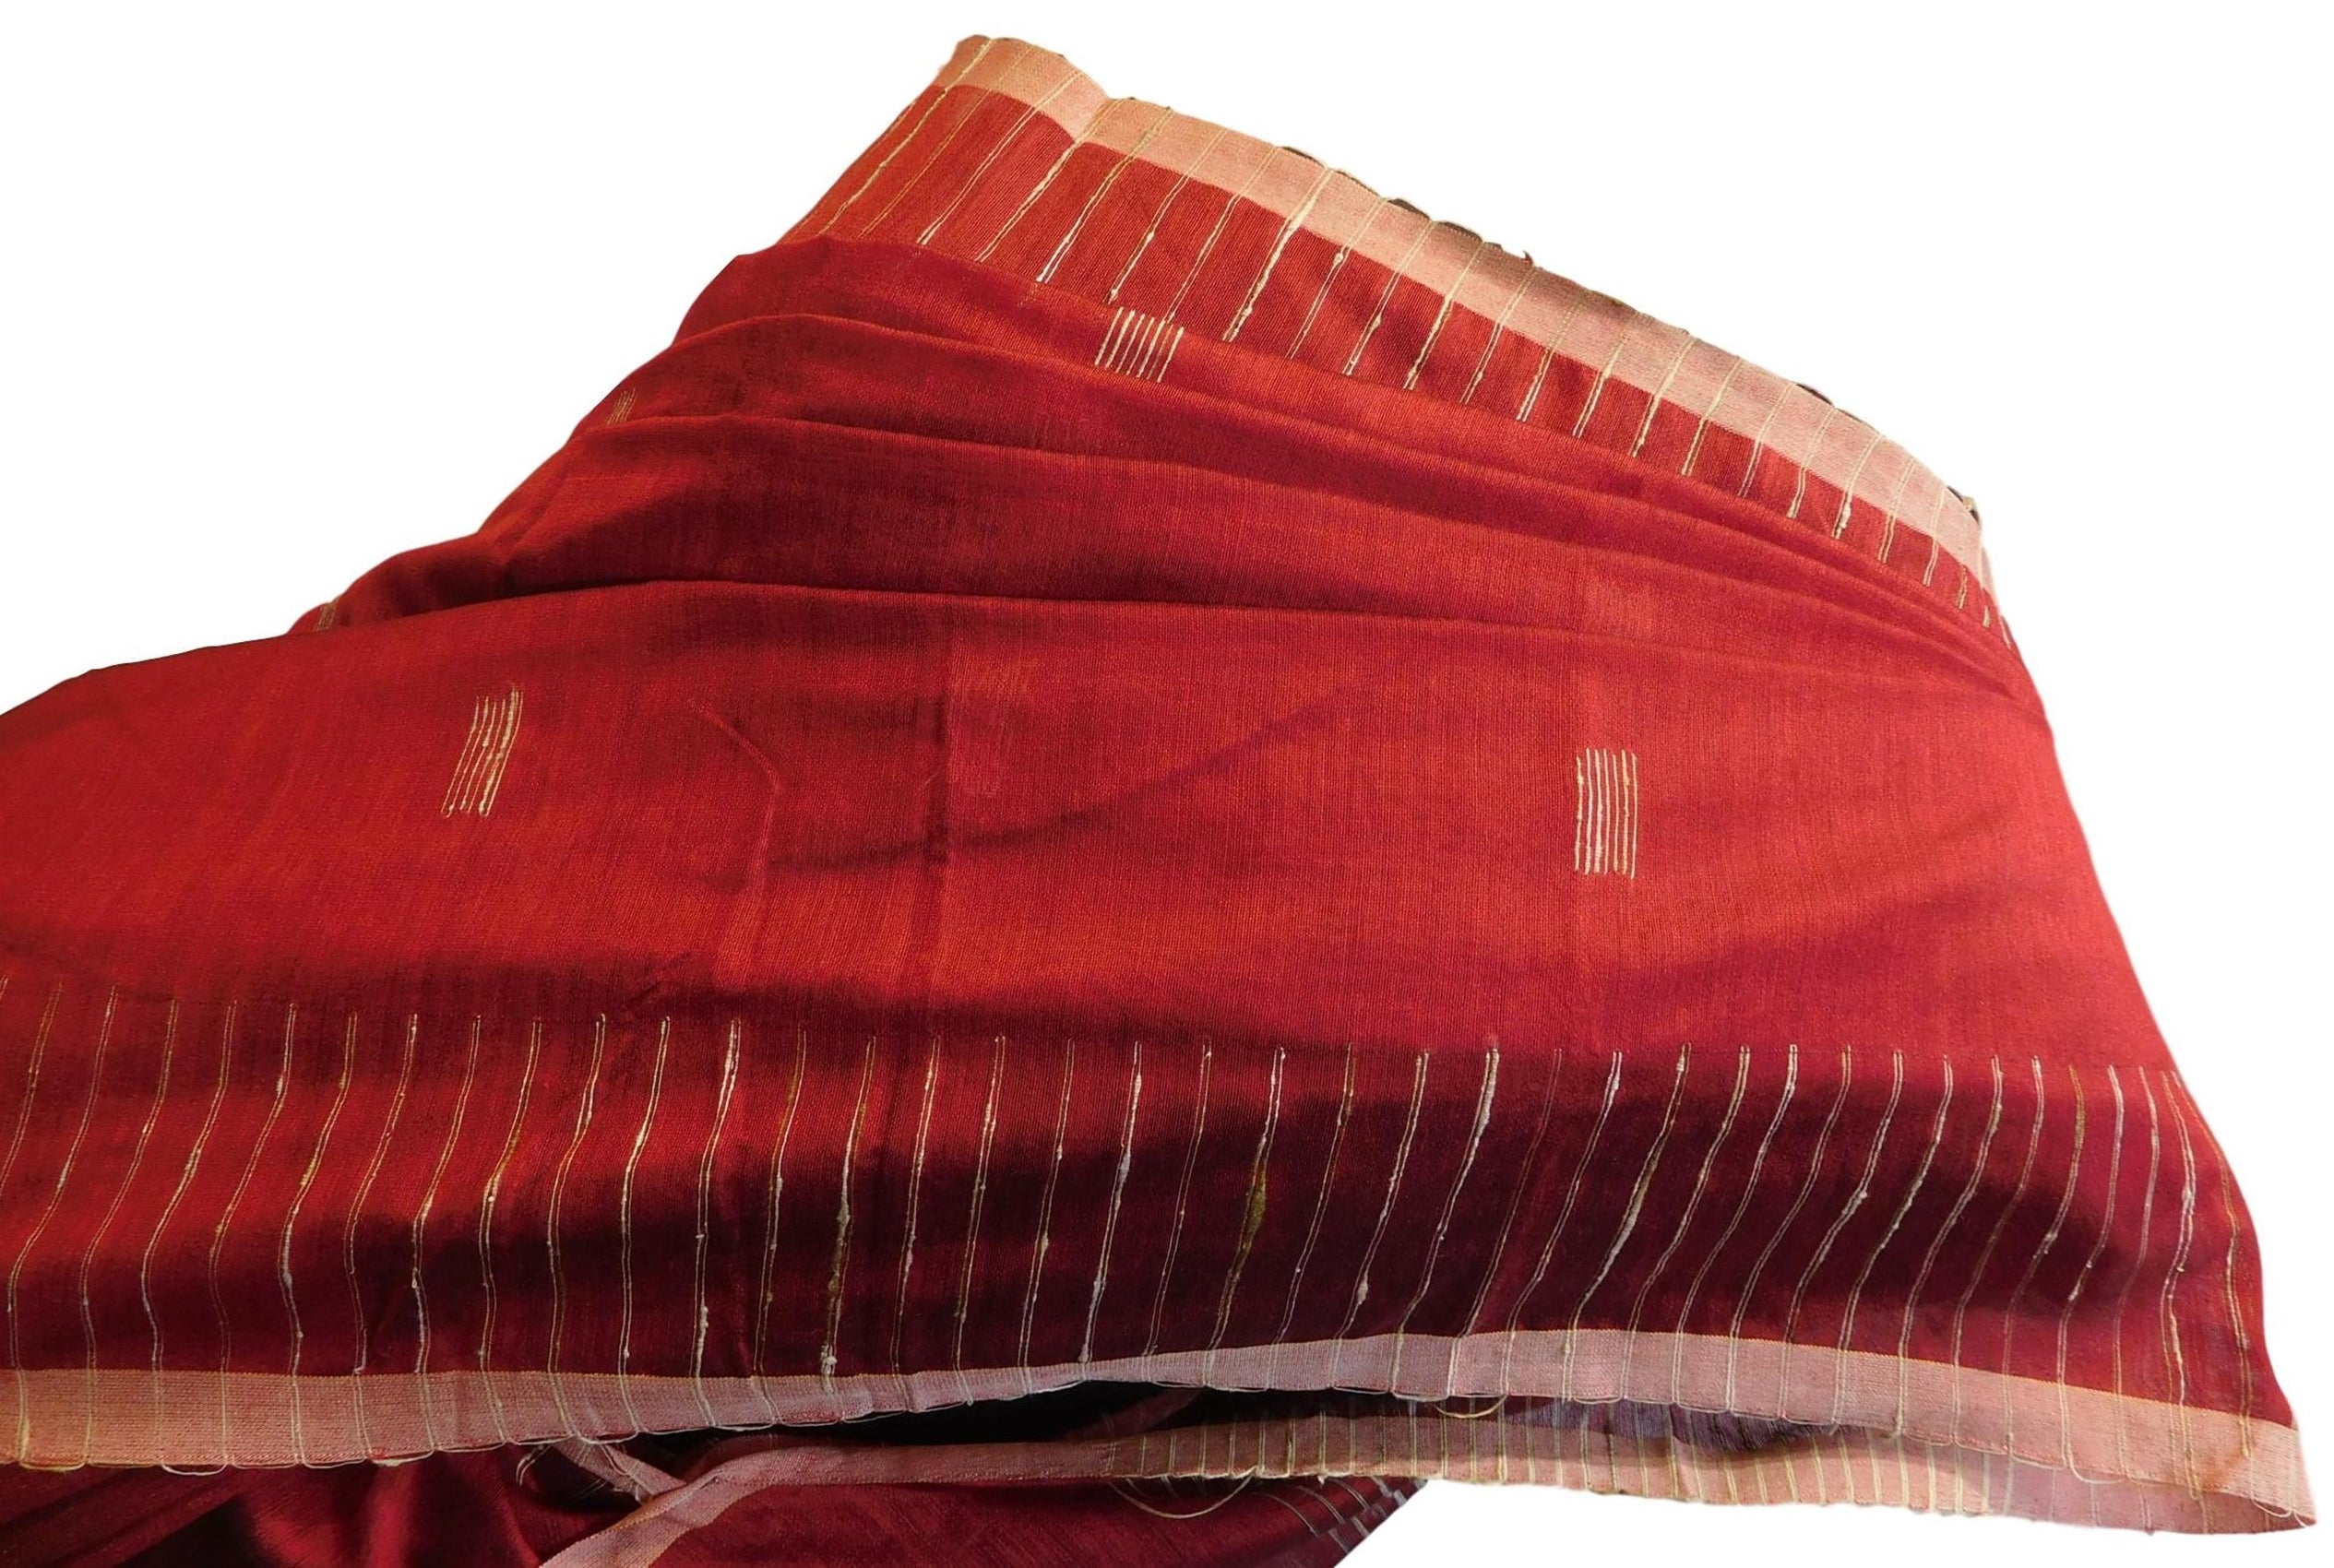 Red Designer Wedding Partywear Pure Handloom Bengal Bangali Cotton Kolkata Saree Sari E129